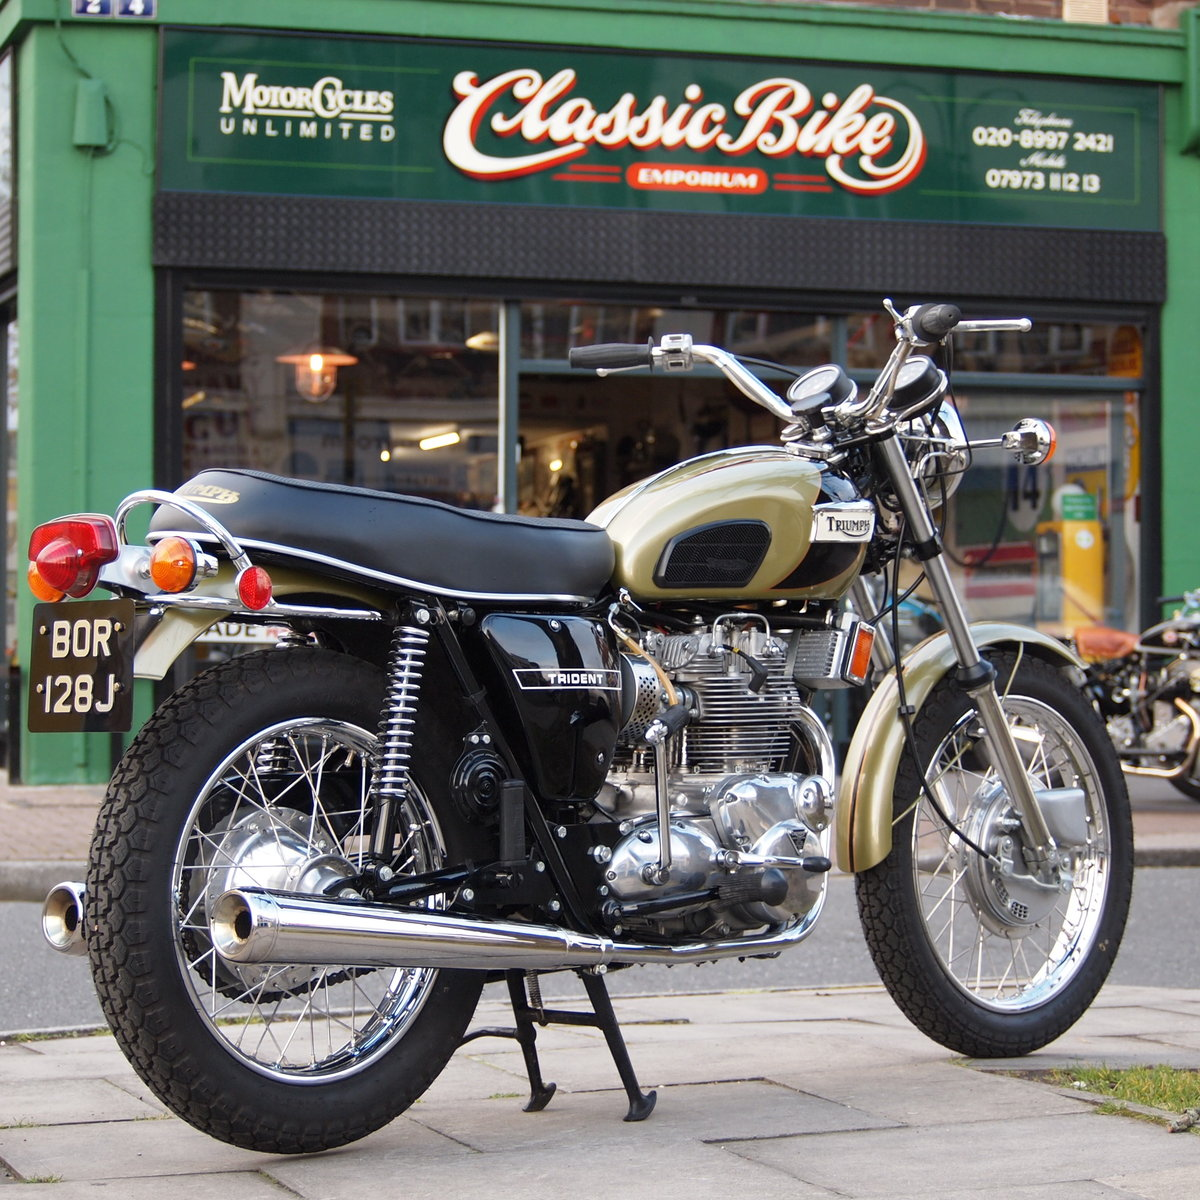 1971 T150T Trident, UK Bike, Concours d'elegance Condition. SOLD (picture 1 of 6)